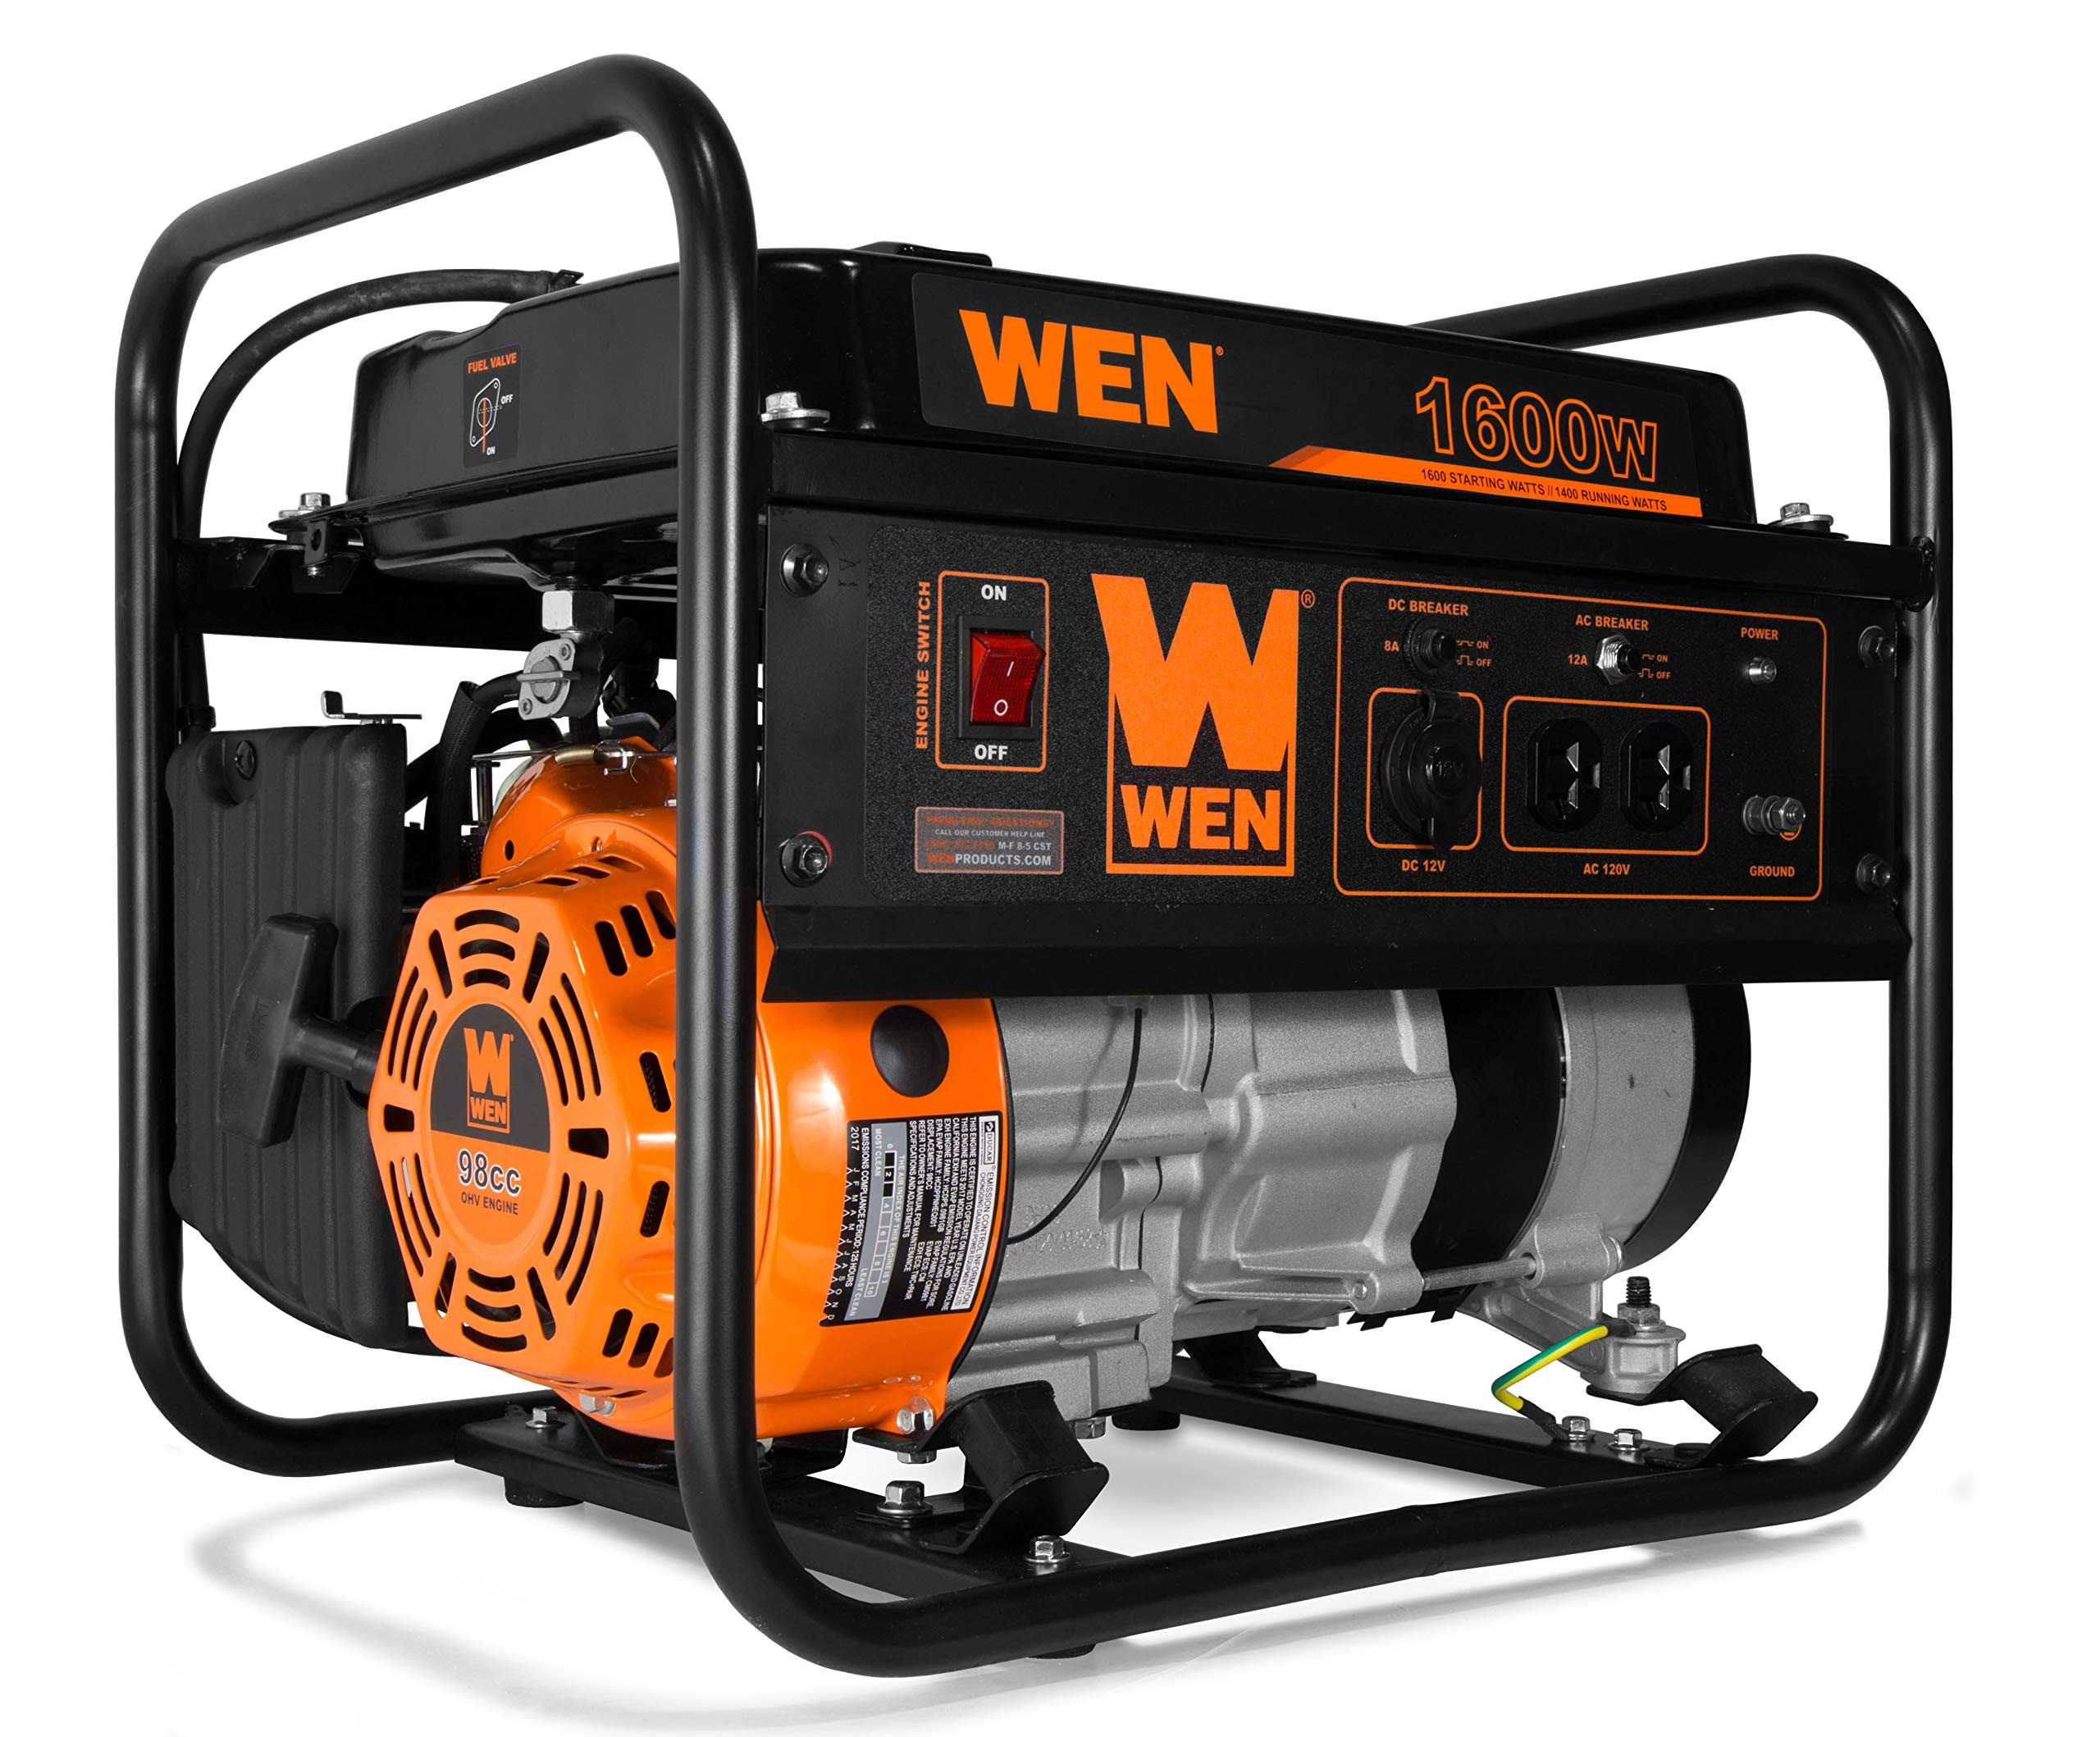 WEN 56160 4-Stroke 98cc 1600-Watt Portable Power Generator,